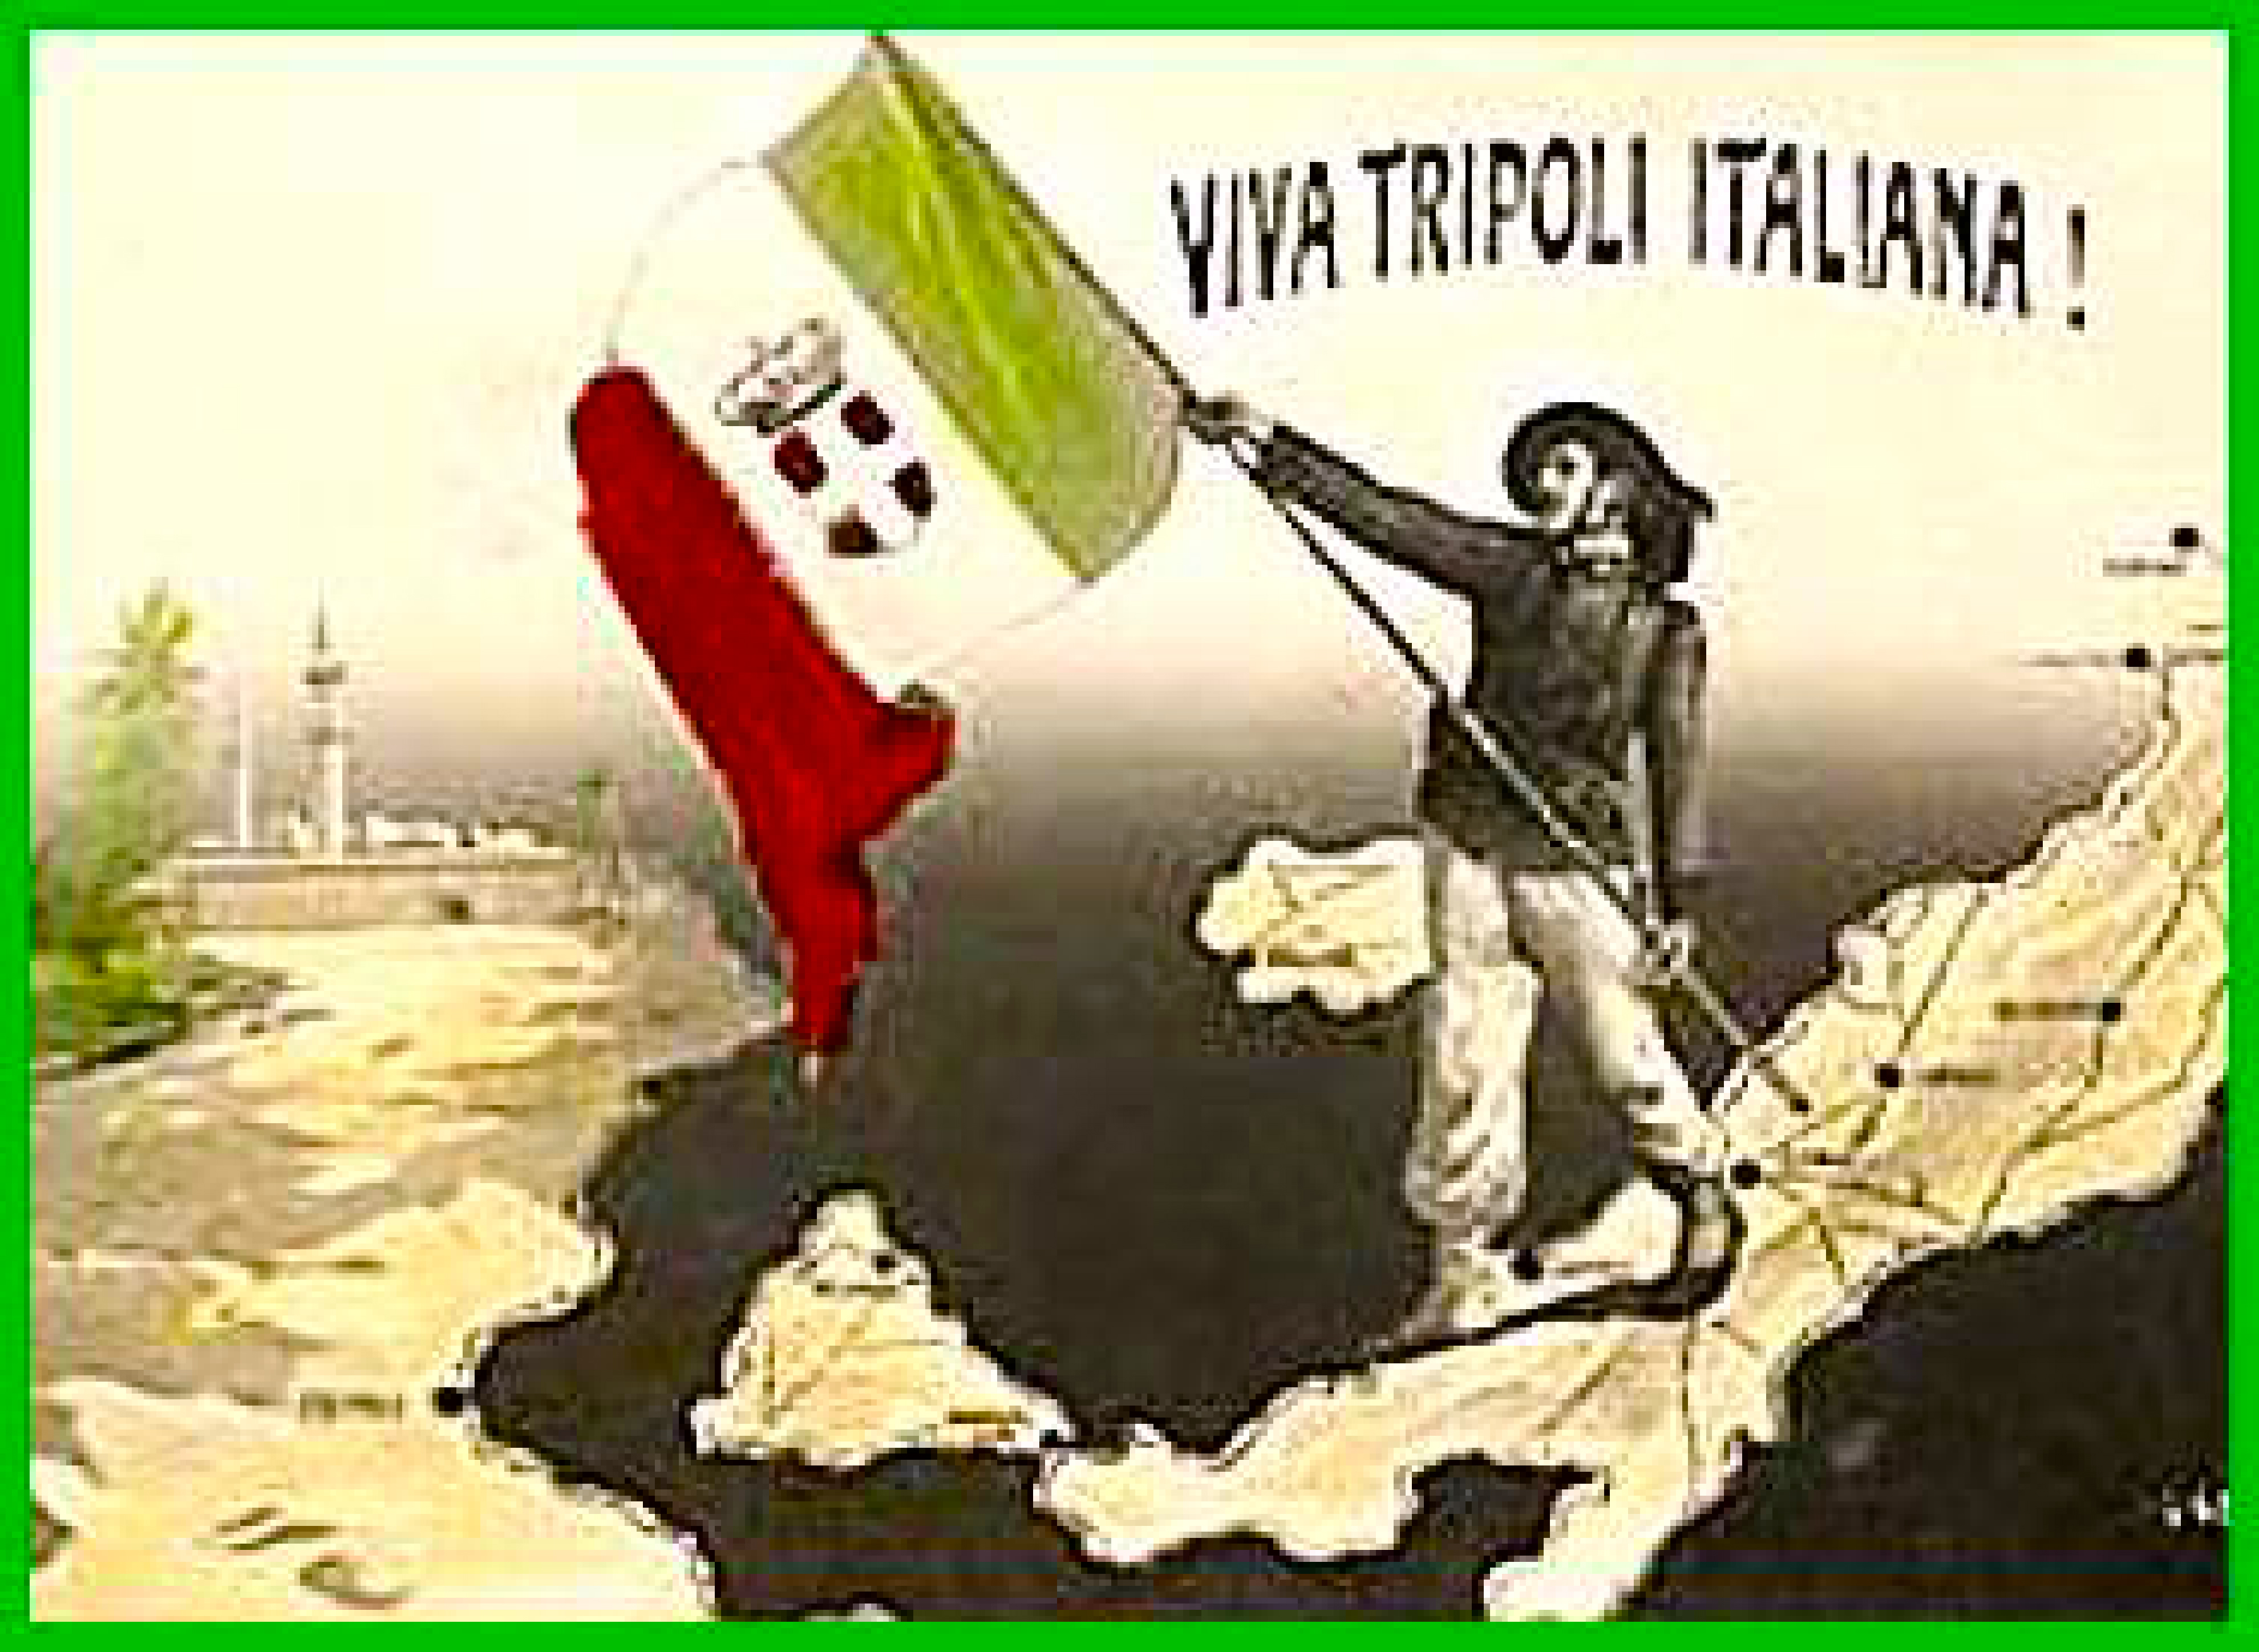 1409032889-0-l--invasione-degli-immigrati-e-la-responsabilita-occidentale